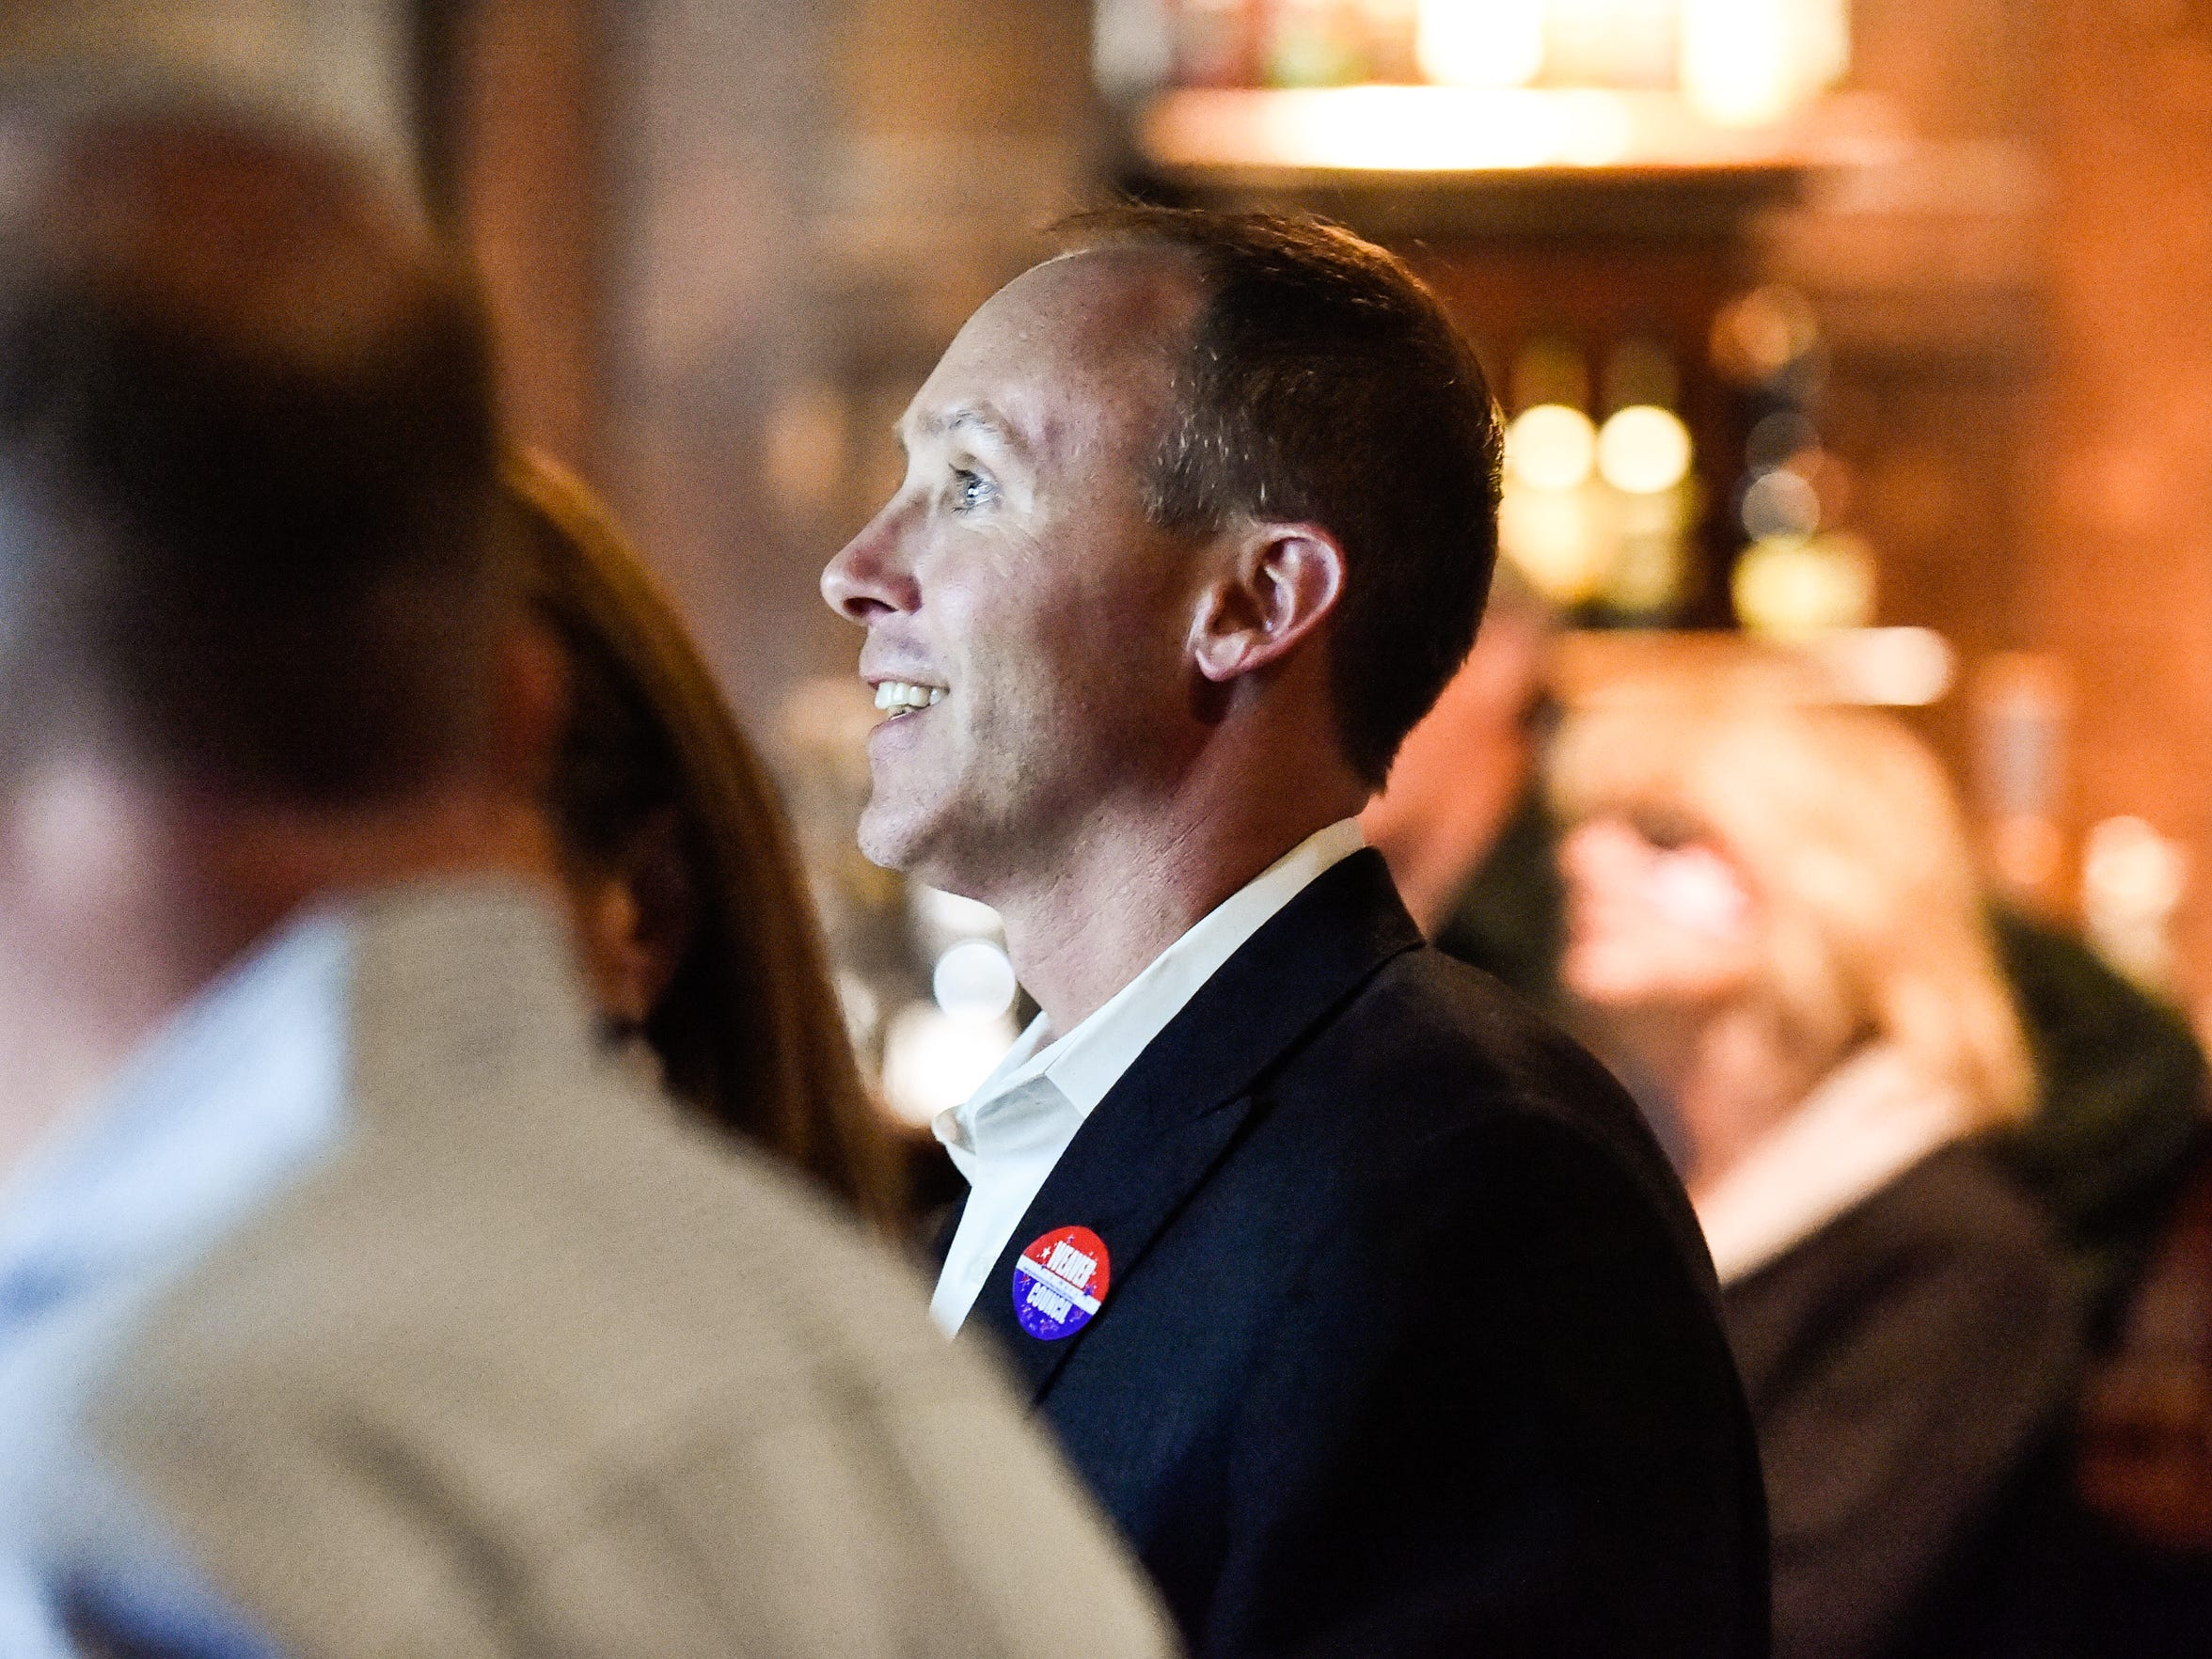 FILE - Jonathan Weaver watches the large television screen at Ri Ra Irish Pub as votes come in declaring him one of three winners of the City Council At-Large seats Tuesday night, November 3, 2015. The other 2 winners were Michelle Mercer and H. Dan Adams. Weaver was the top vote getter with 11,237 votes.